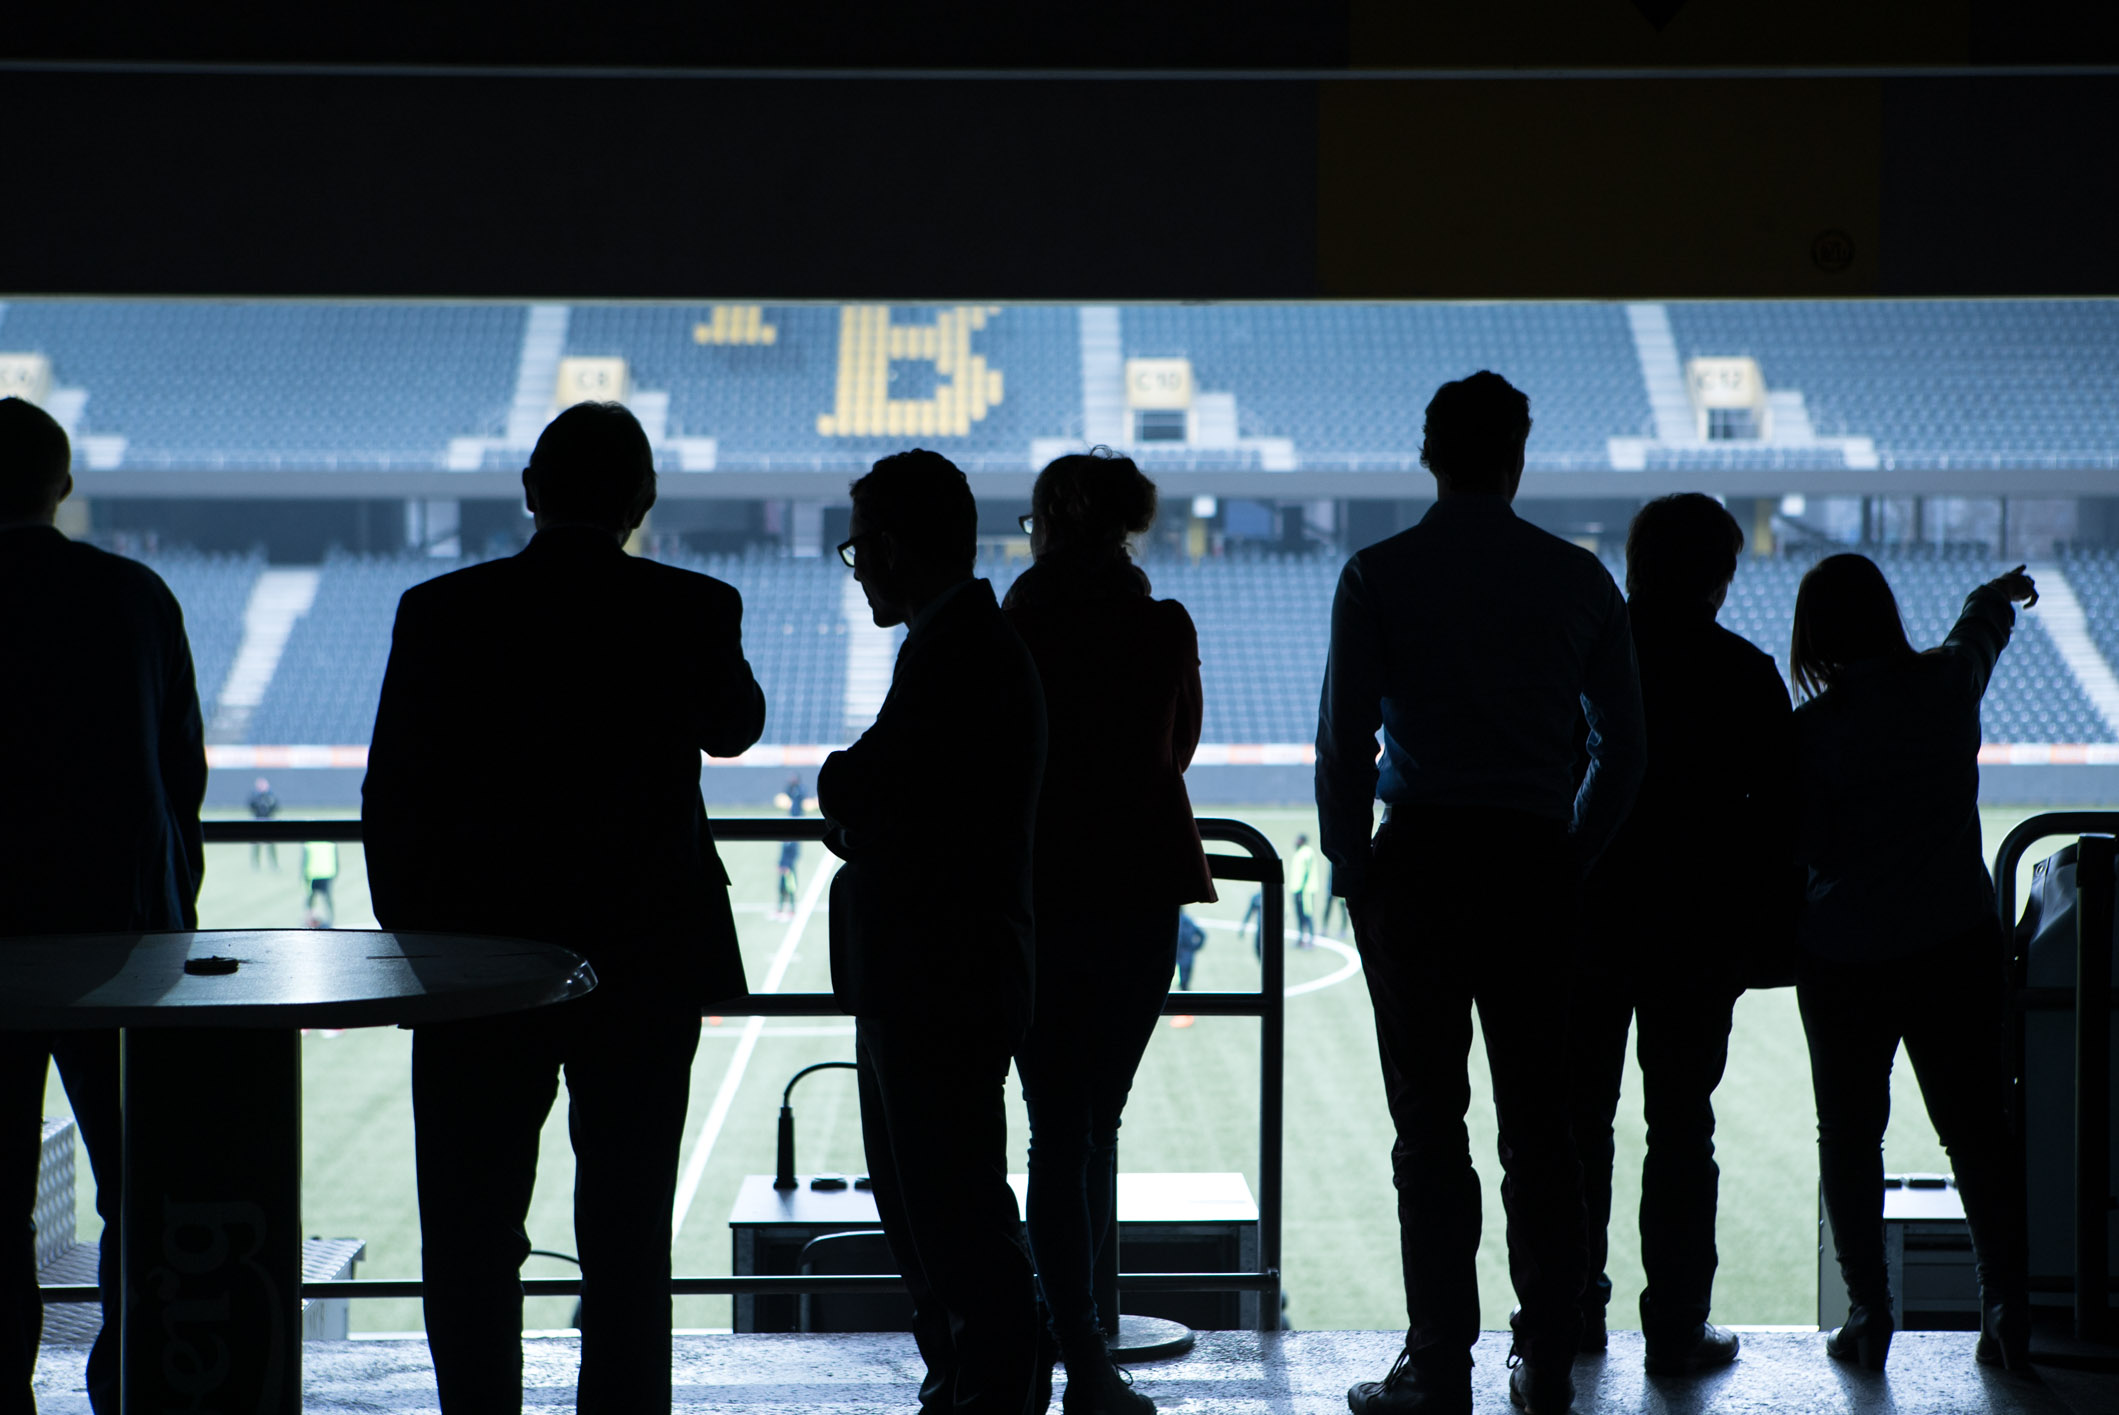 Photo by Pascal Sommer - Politicians in the Stade de Suisse